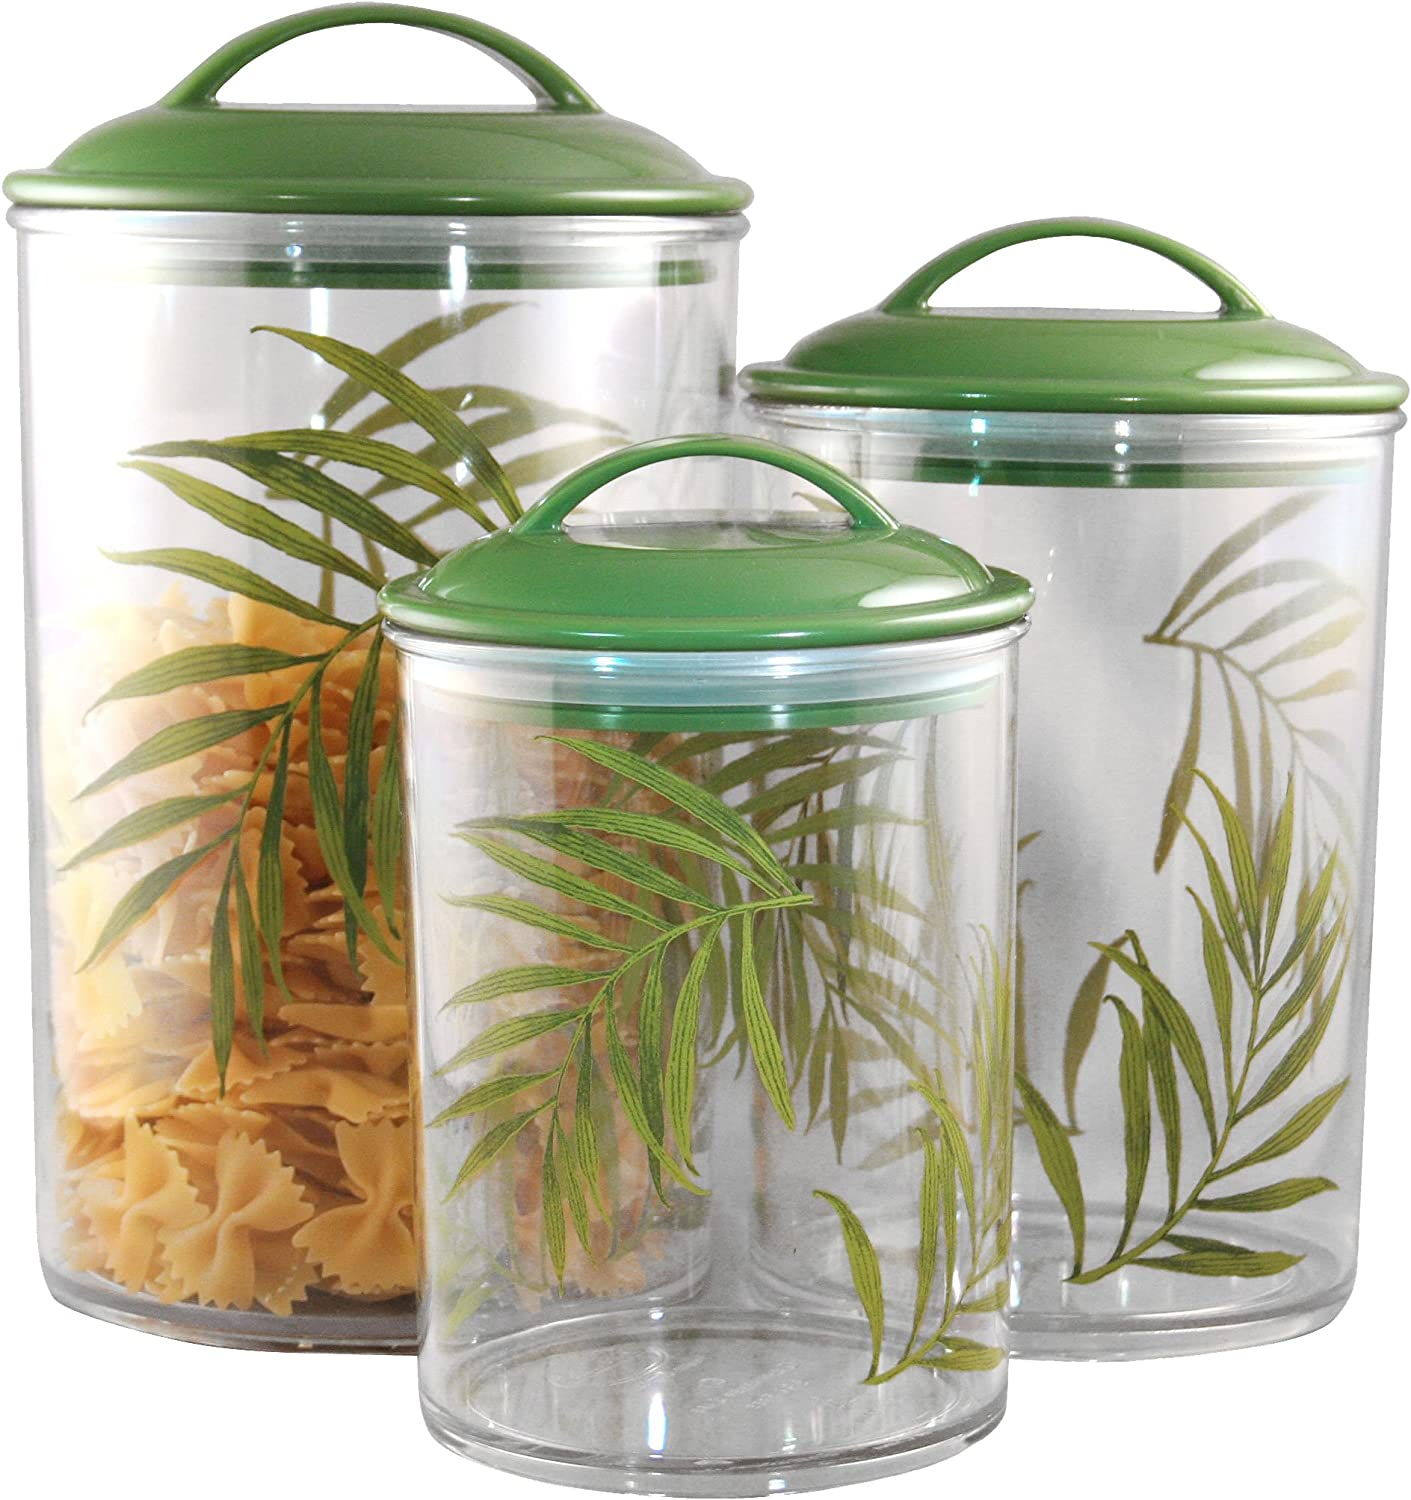 Corelle Coordinates famous by Reston Free shipping anywhere in the nation Lloyd Storage S Acrylic Canisters